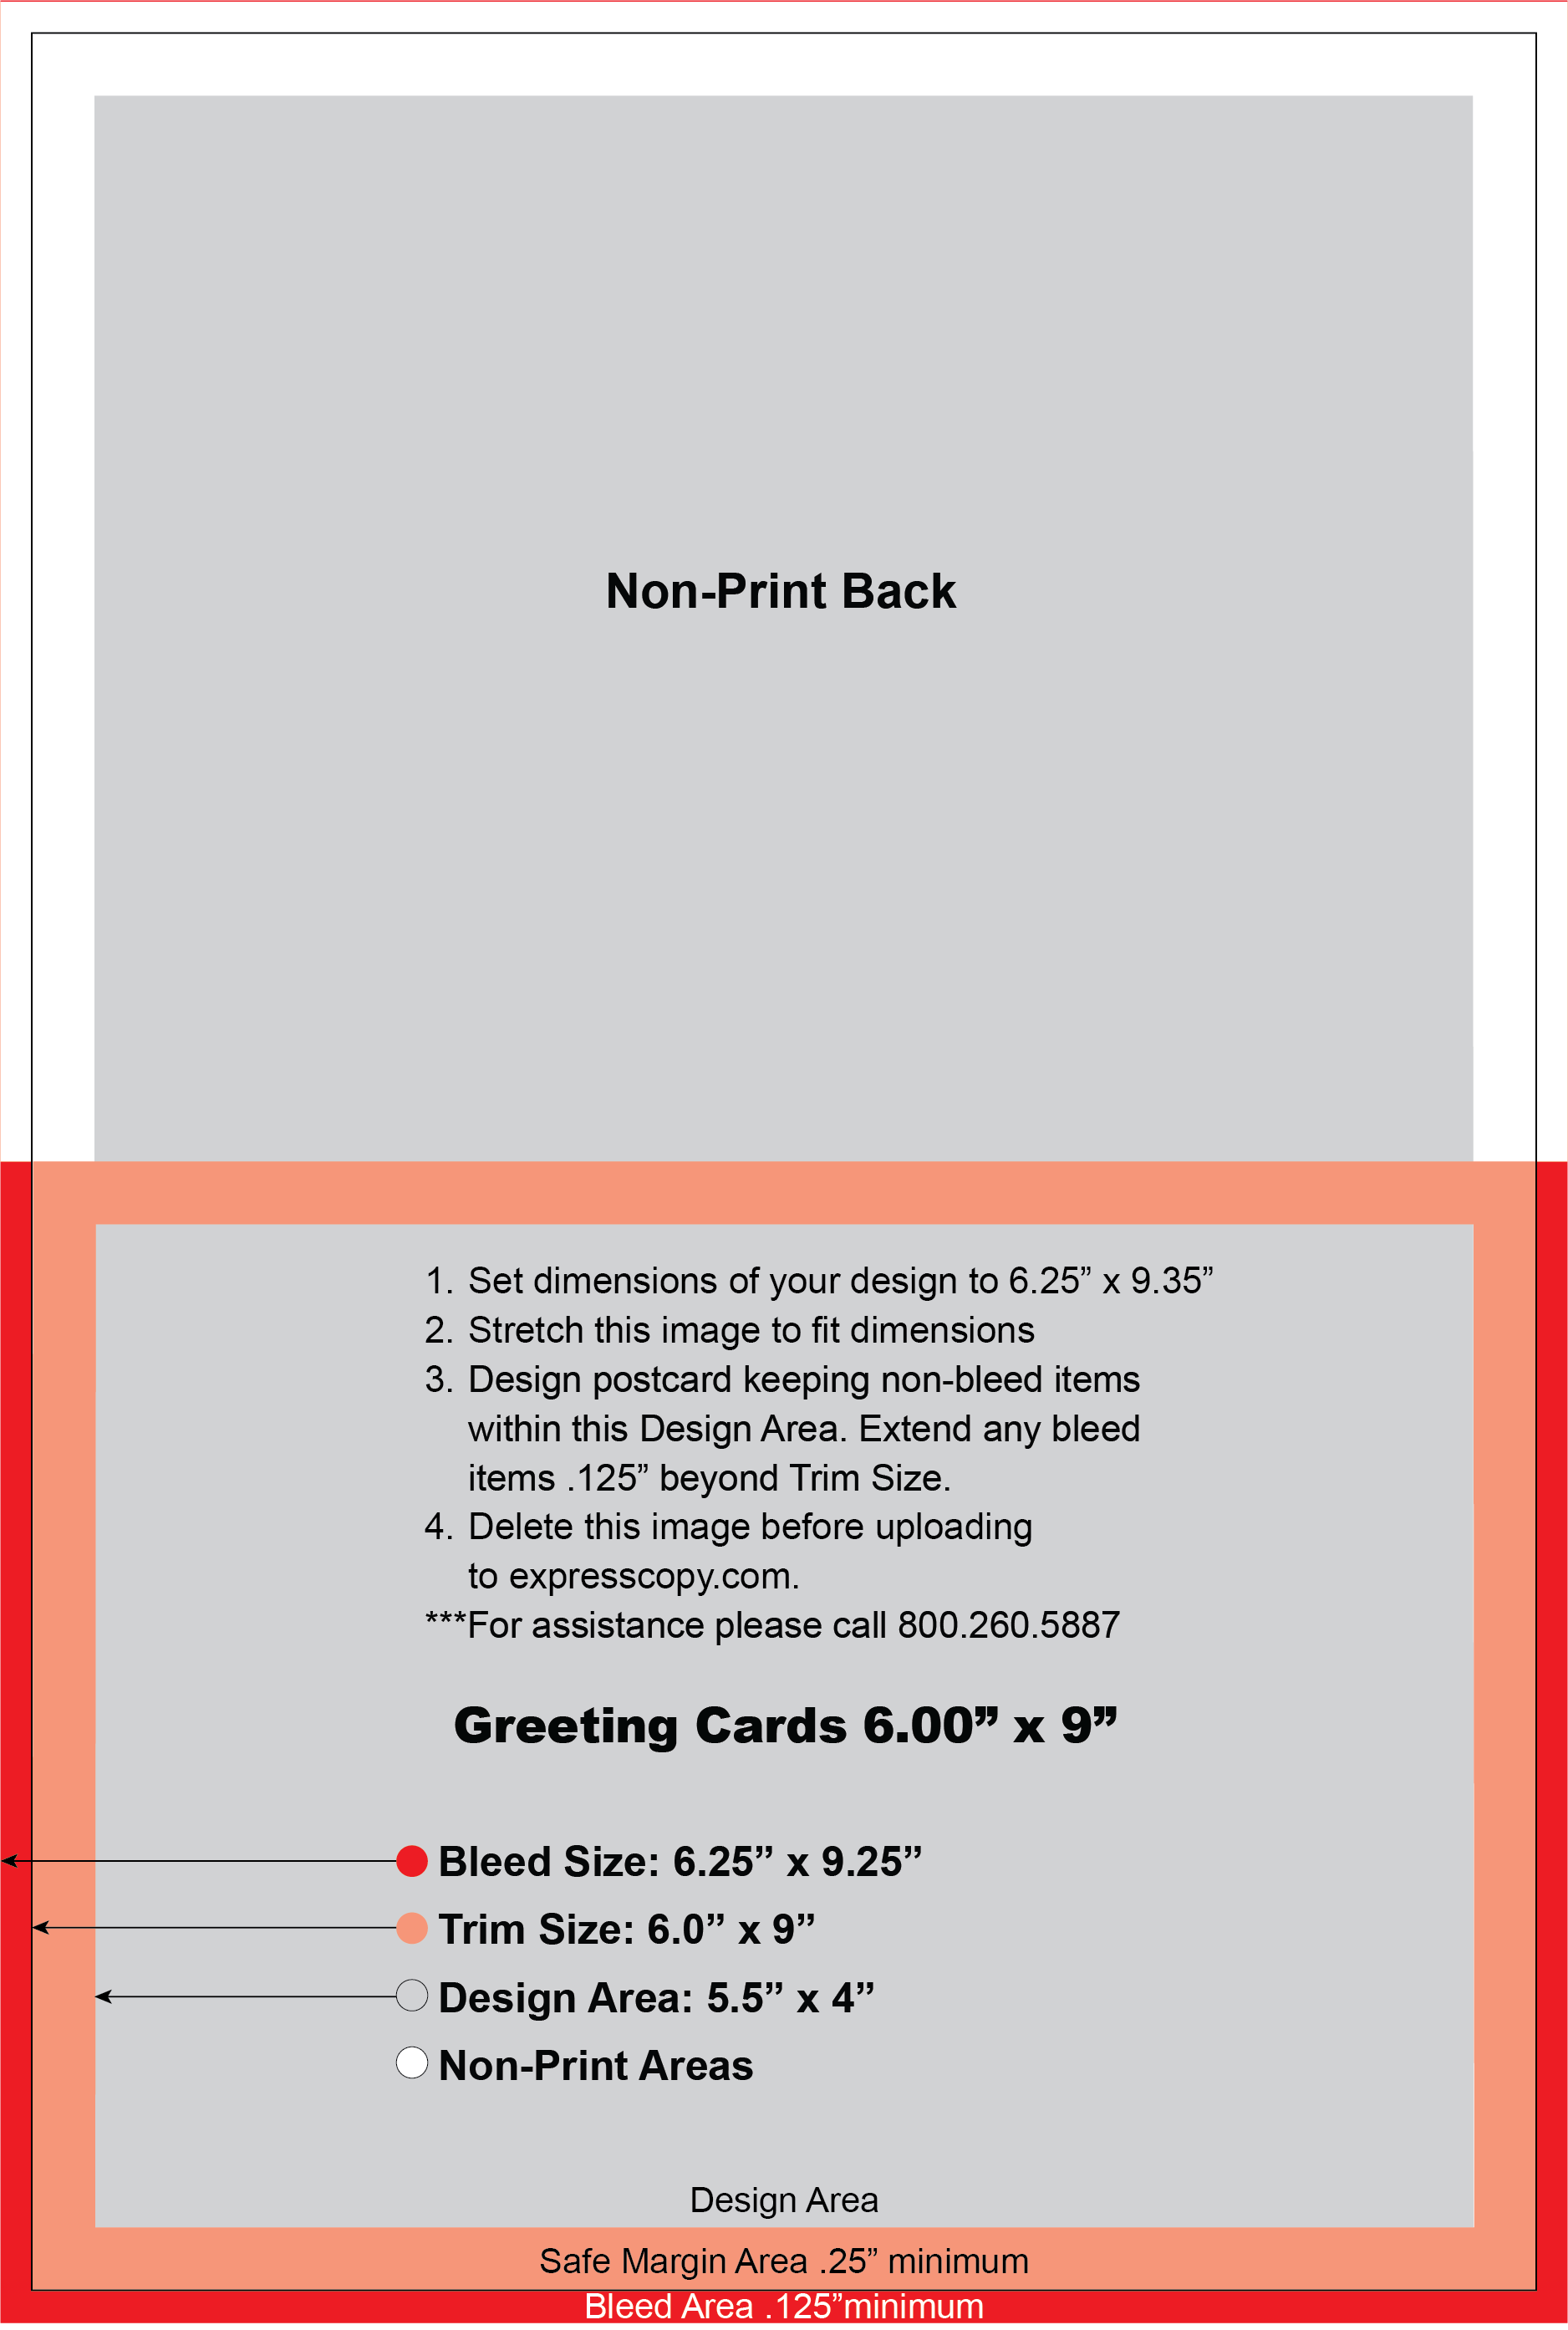 Greeting Card Print Specifications – Standard Birthday Card Size